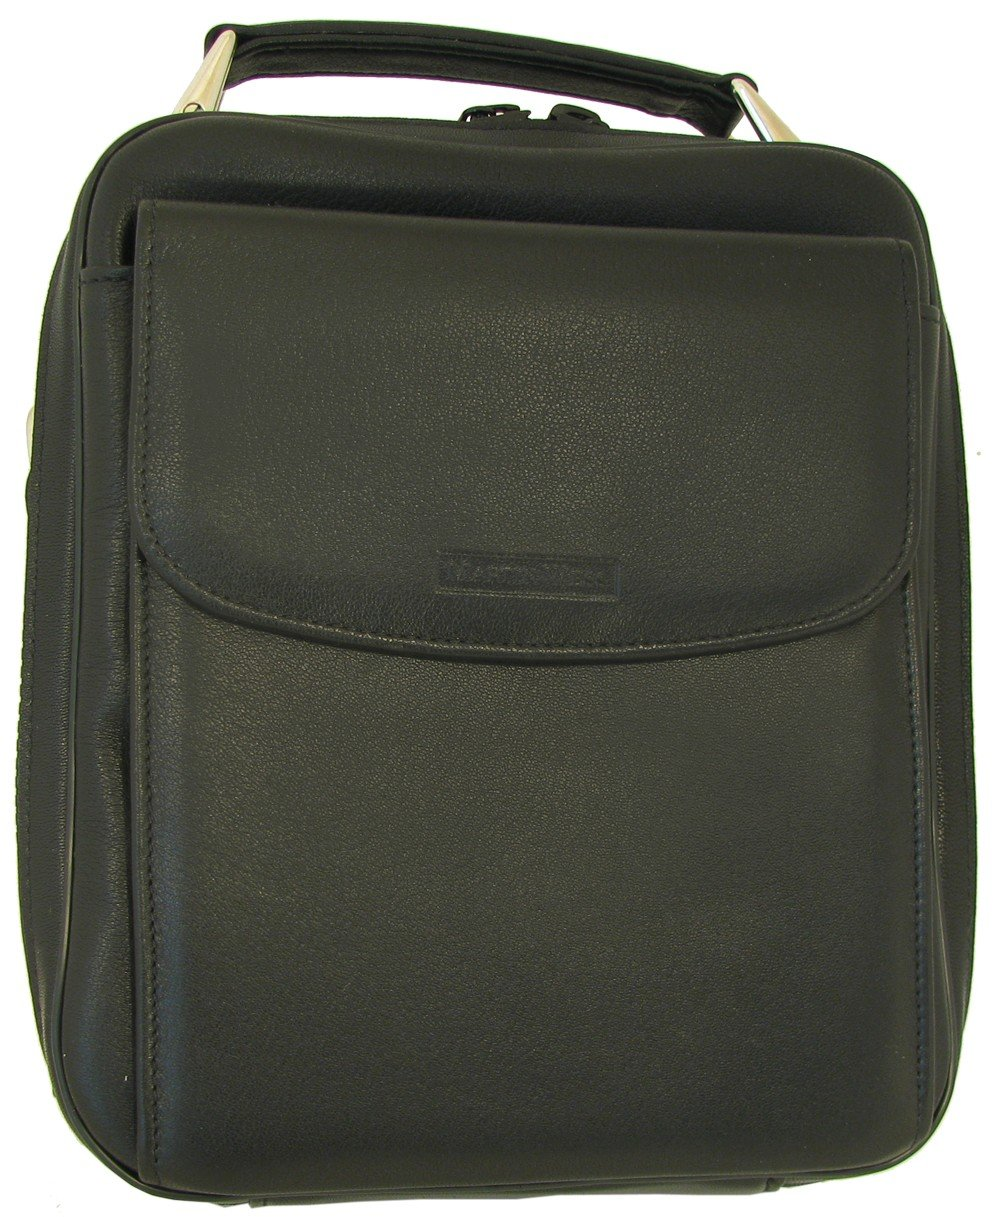 Martin Wess Germany ''Lea'' Soft Lamb Nappa Leather 6 Pipe Bag Case with Office Compartment